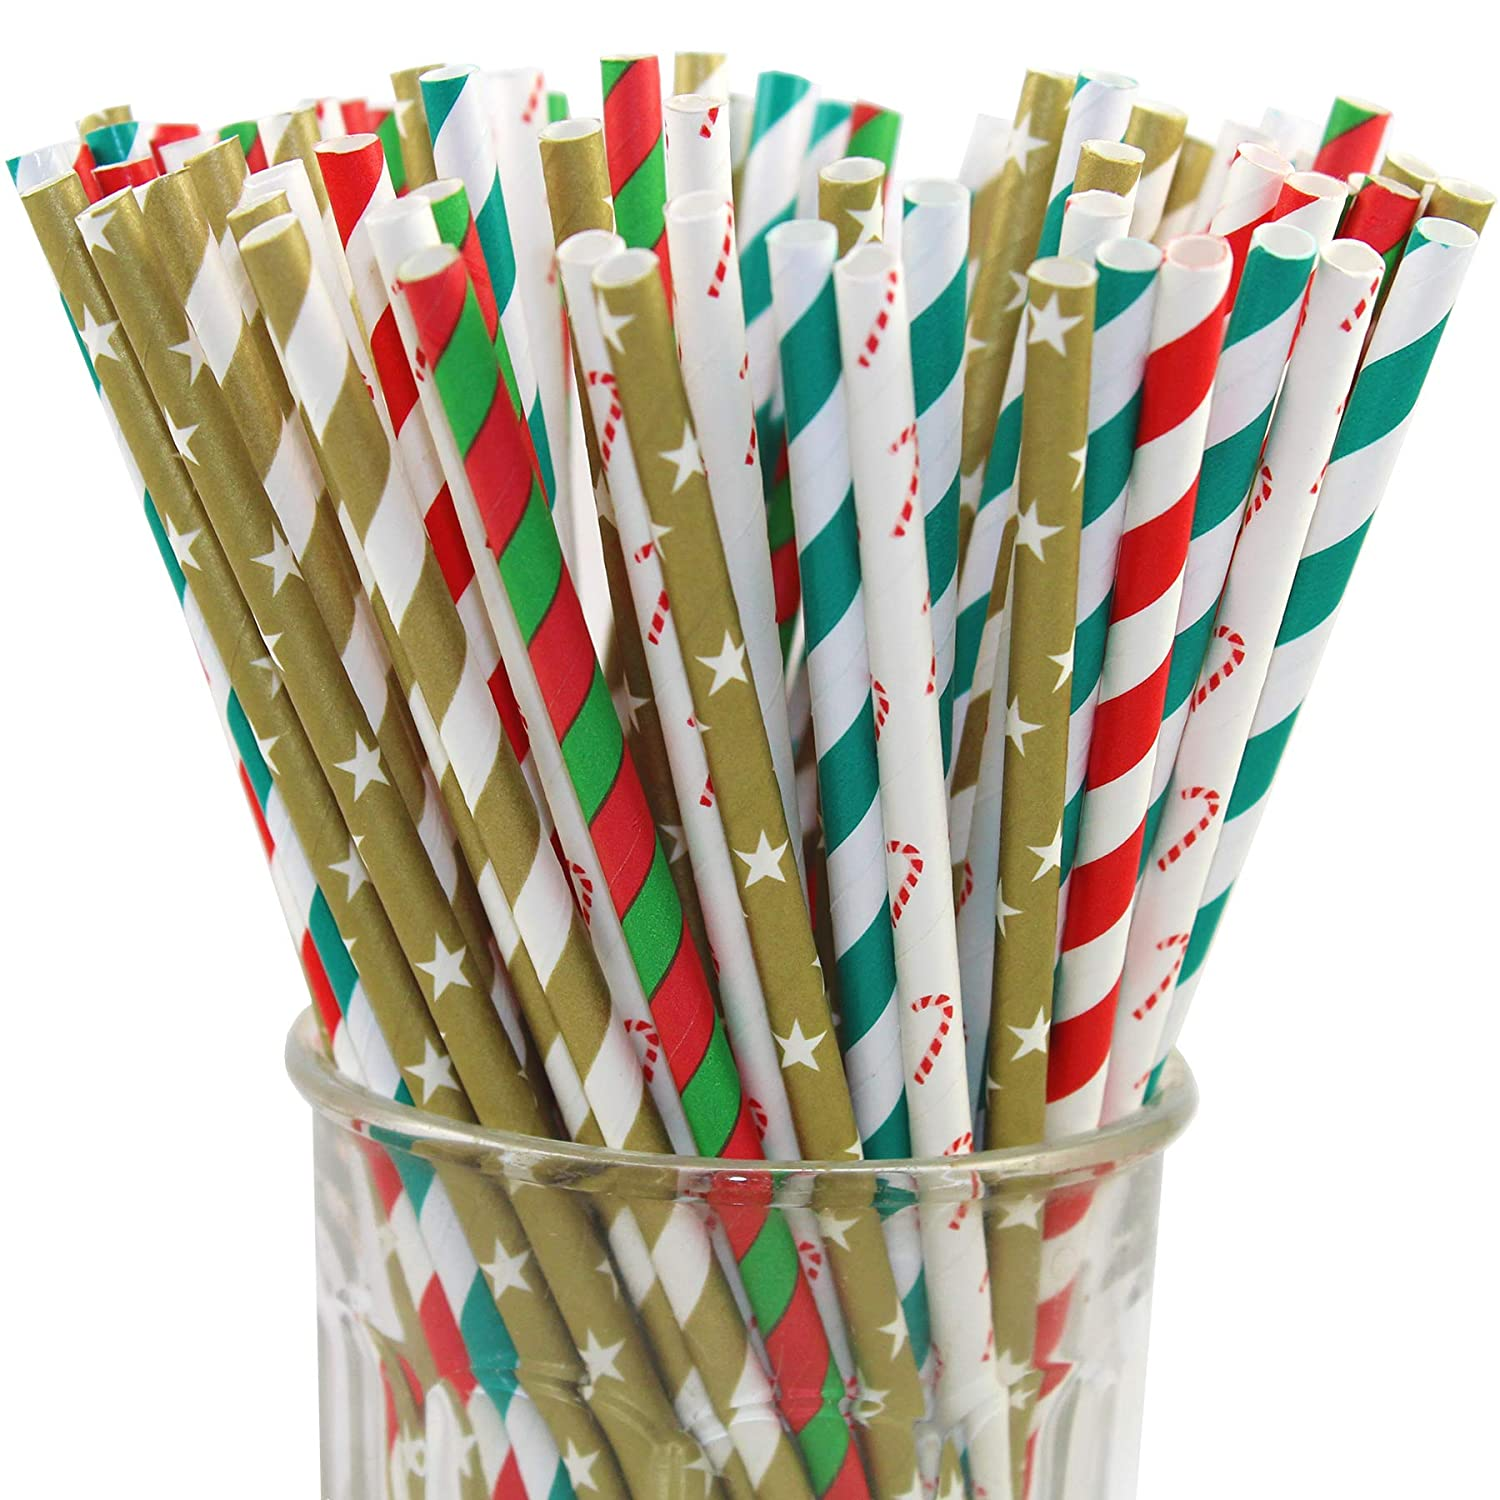 150 Christmas Holiday Paper Straw Combo, 6 Designs - 100% Biodegradable - 7.75 Inches - Holiday Party Supply - 150 Straws, 6 Patterns Individually Packed Talented Kidz